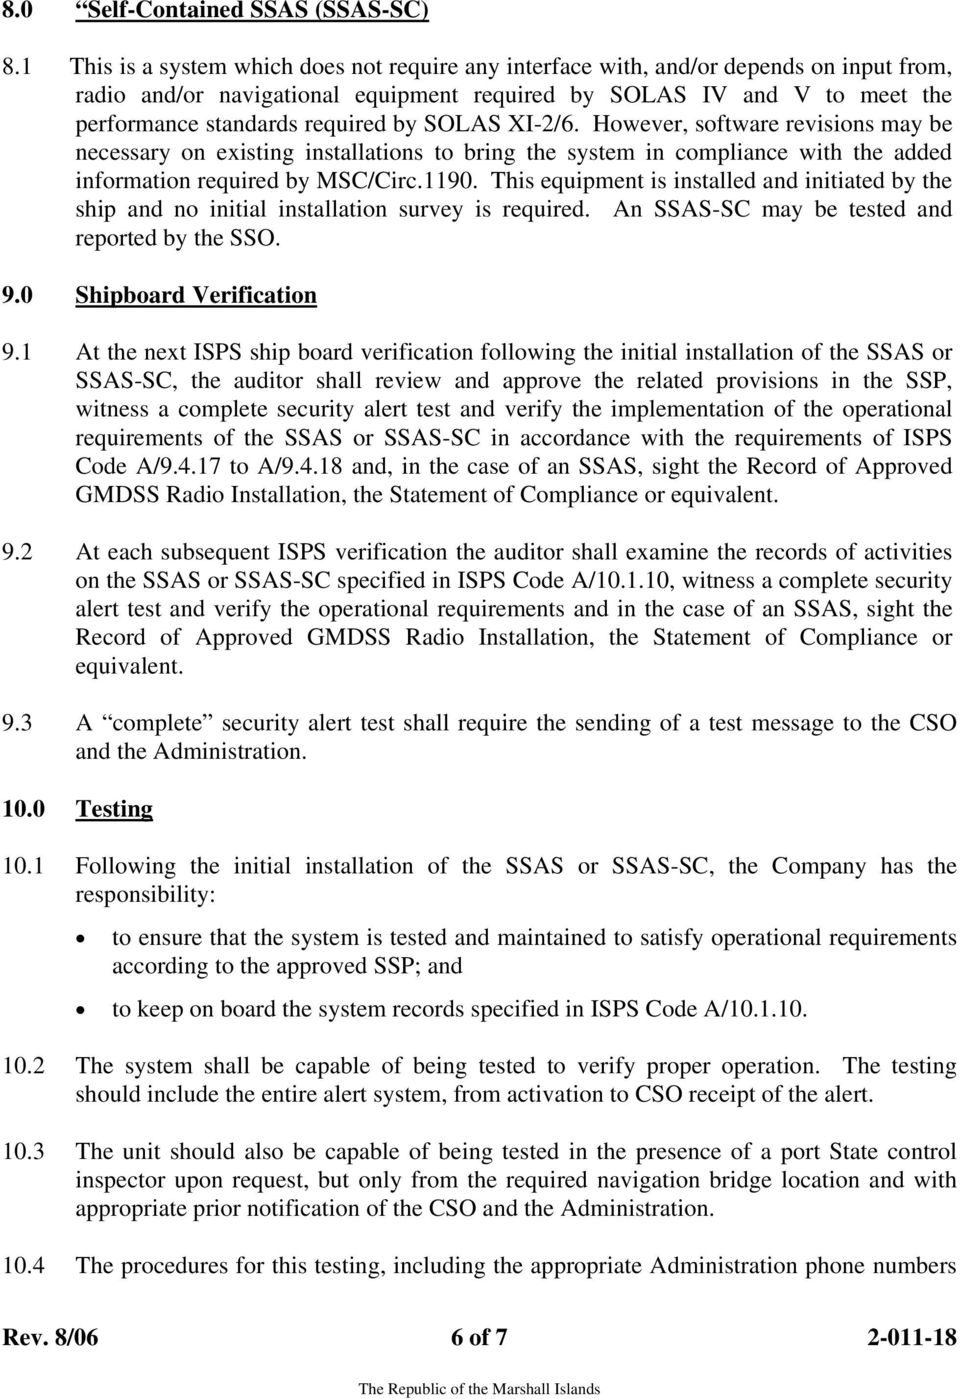 by SOLAS XI-2/6. However, software revisions may be necessary on existing installations to bring the system in compliance with the added information required by MSC/Circ.1190.